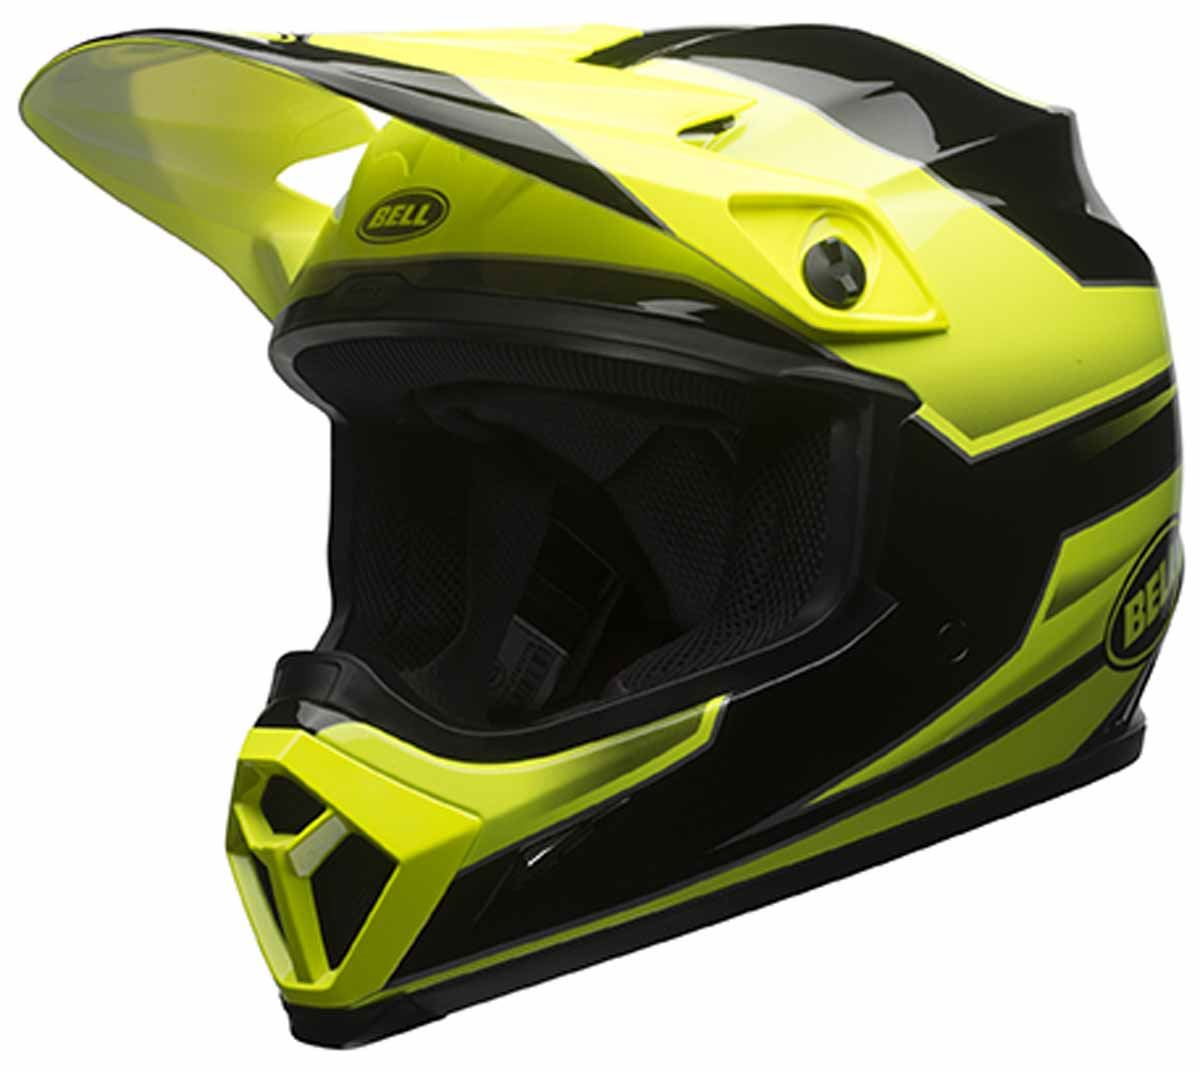 bell mx 9 helmet off road dirt bike mx motorcycle dot ebay. Black Bedroom Furniture Sets. Home Design Ideas